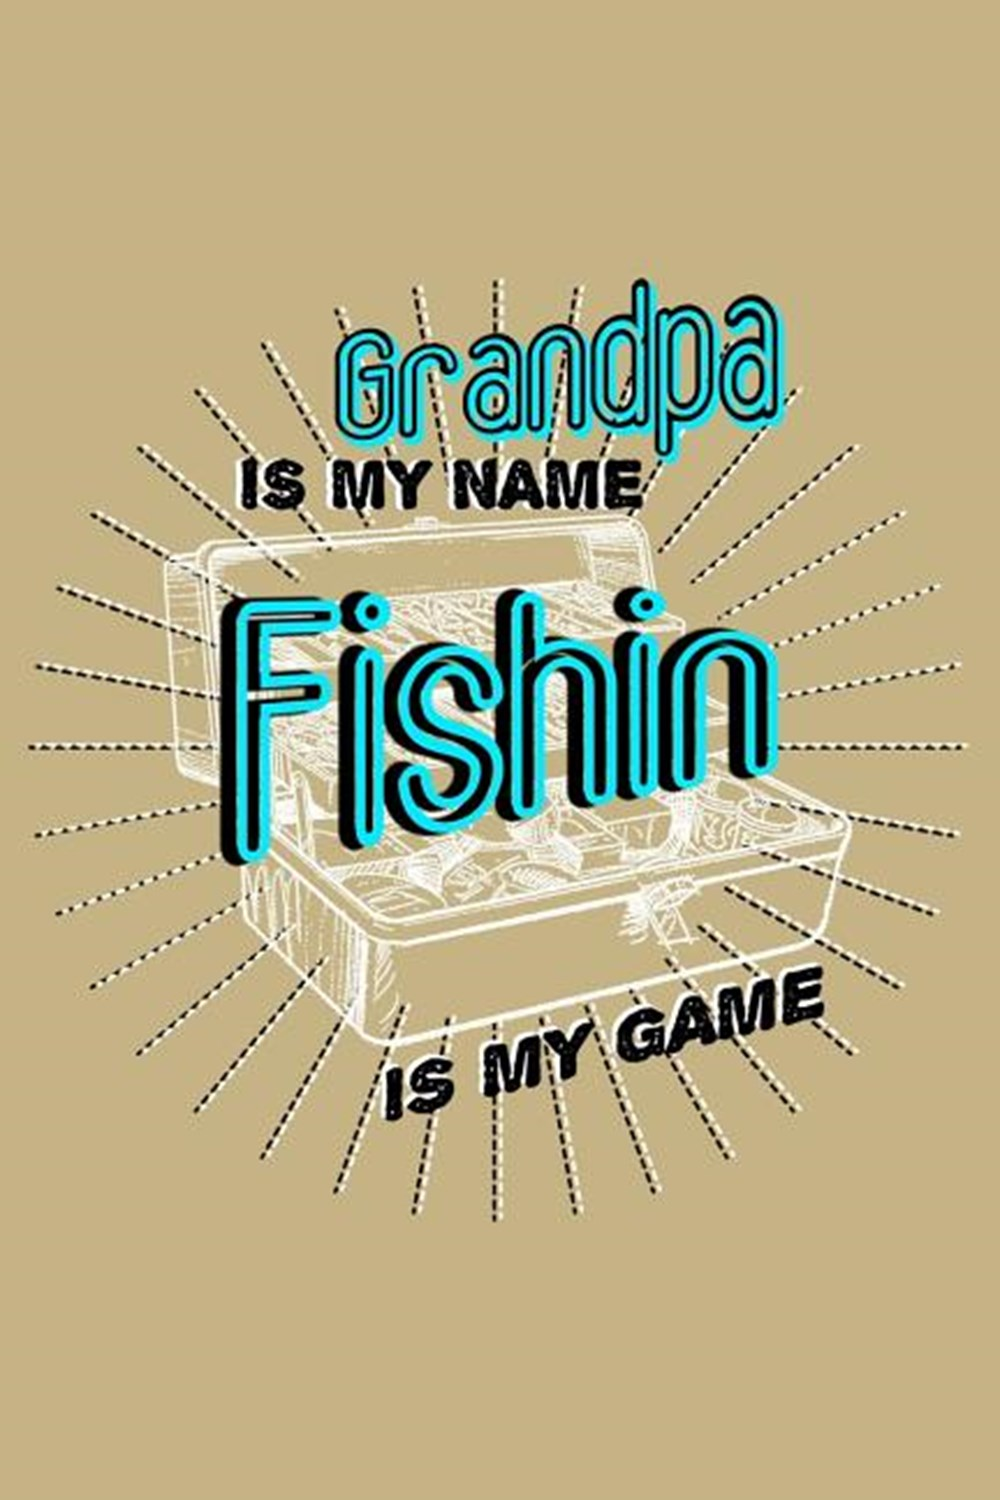 Grandpa Is My Name Fishin Is My Game Blank Paper Sketch Book - Artist Sketch Pad Journal for Sketchi